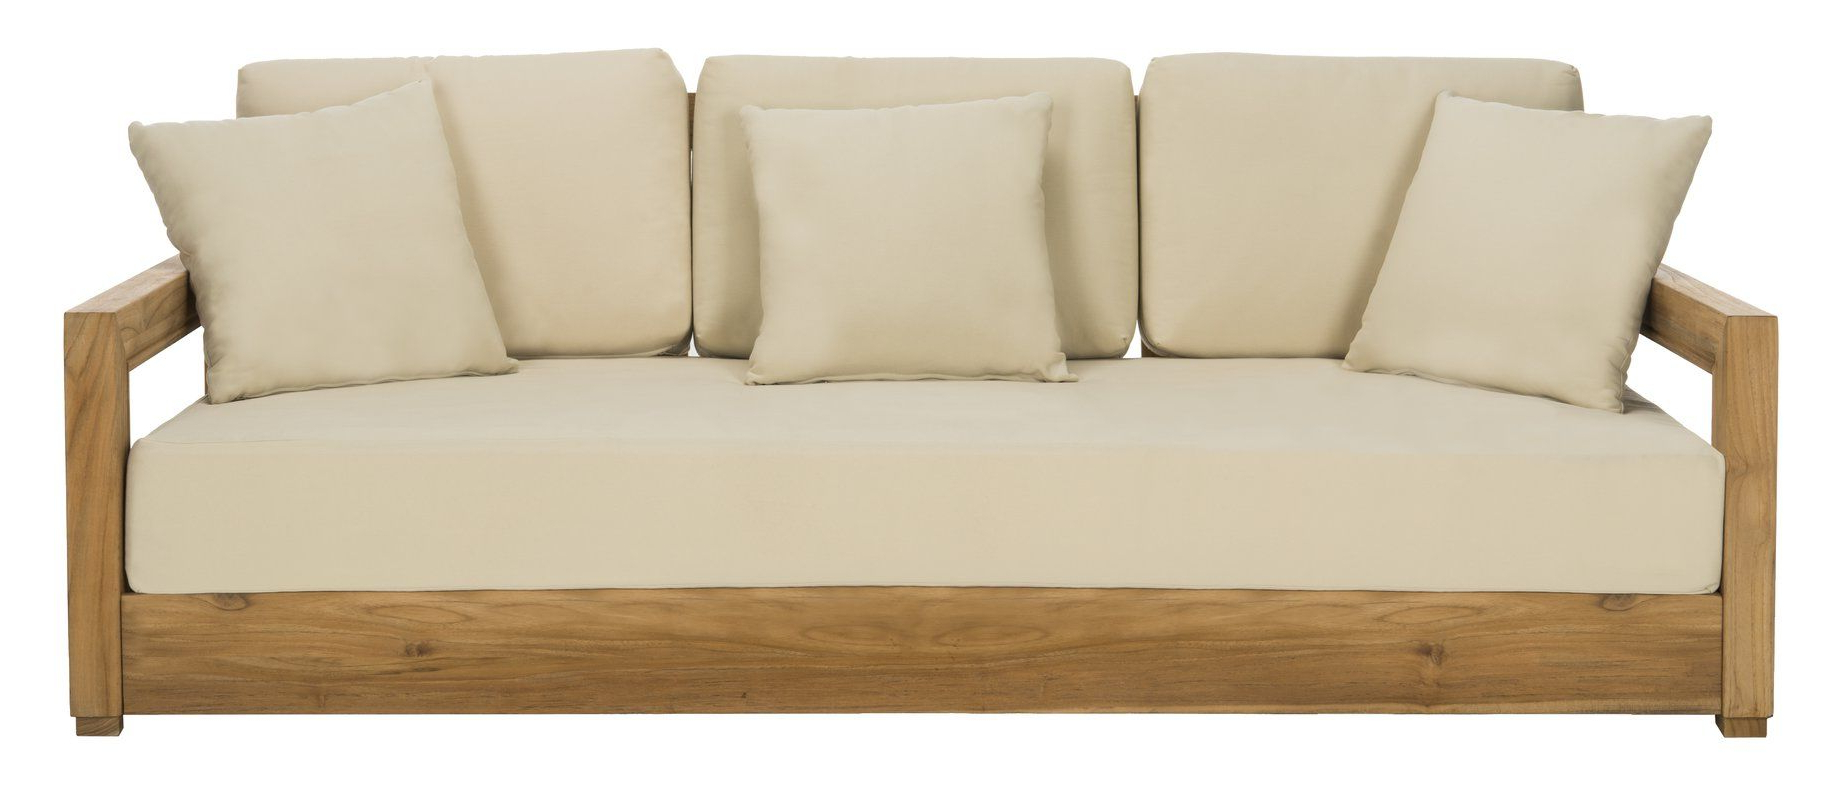 Popular Lakeland Teak Loveseats With Cushions Throughout Lakeland Patio Sofa With Cushions (View 16 of 20)